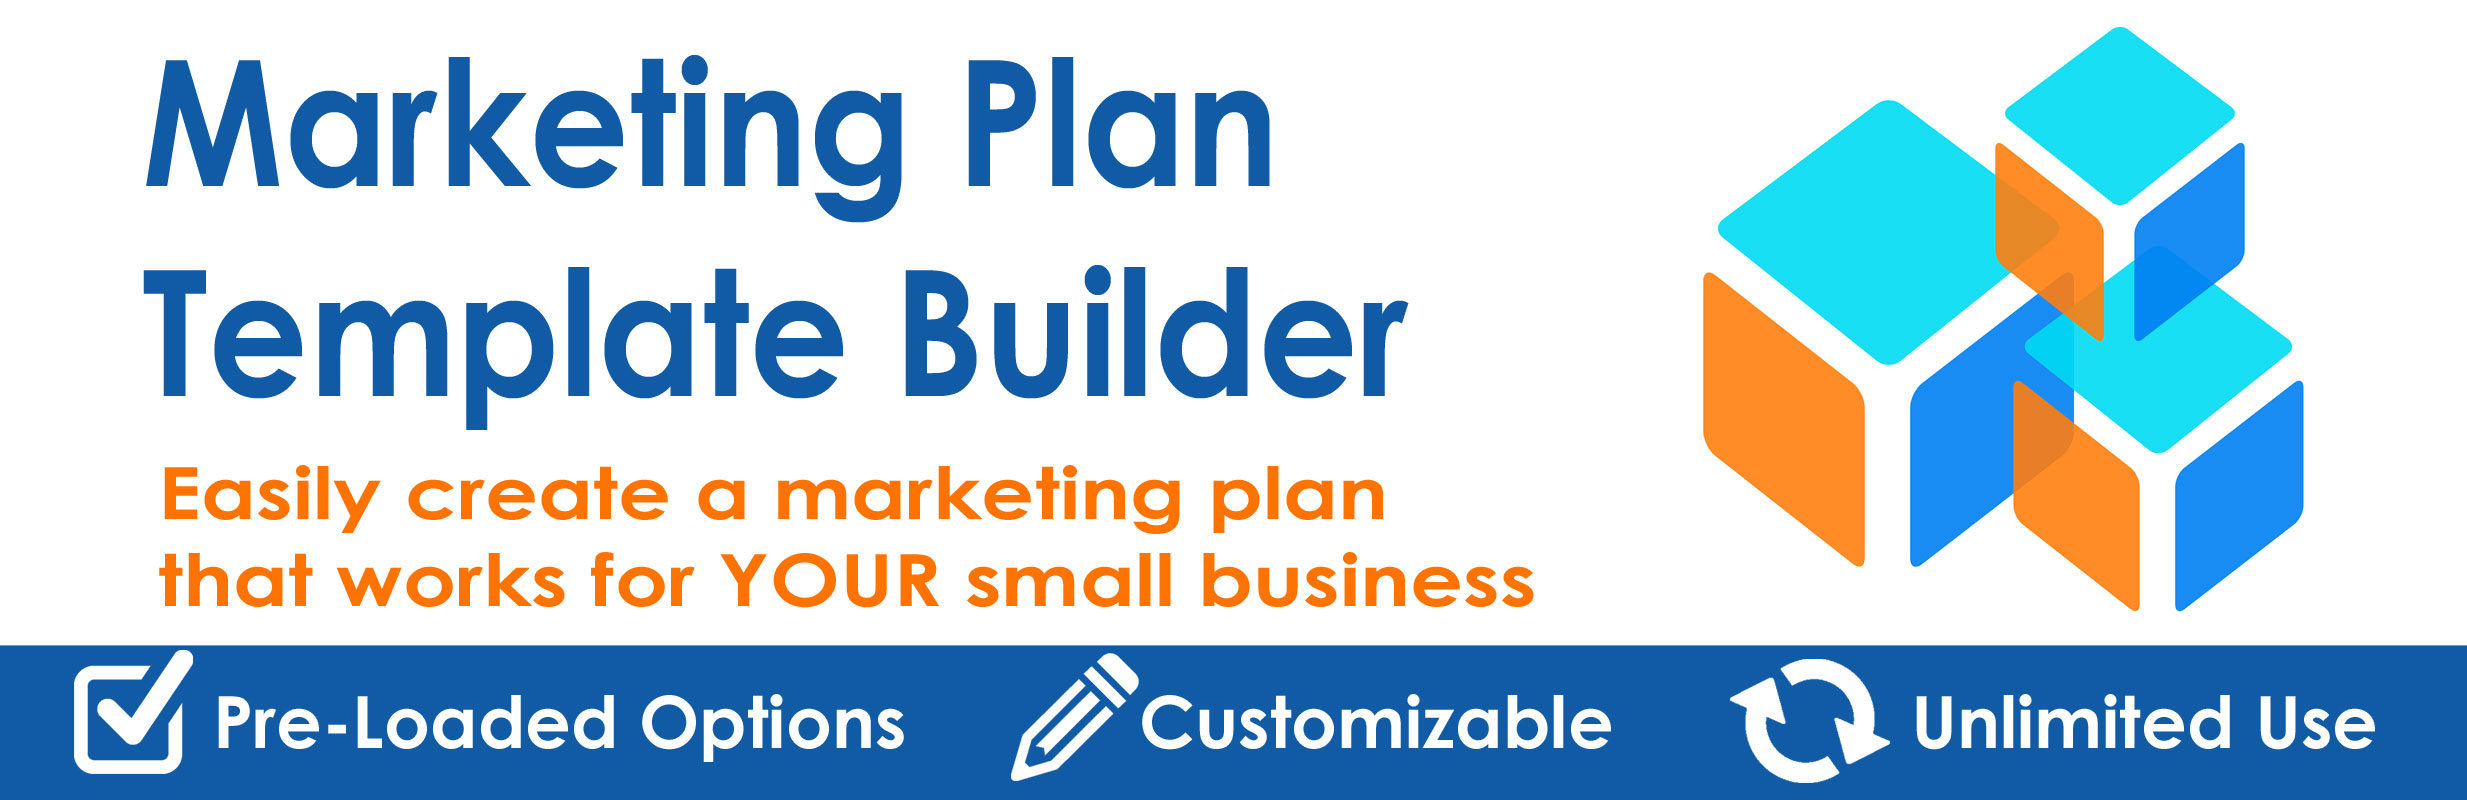 Marketing To Builders